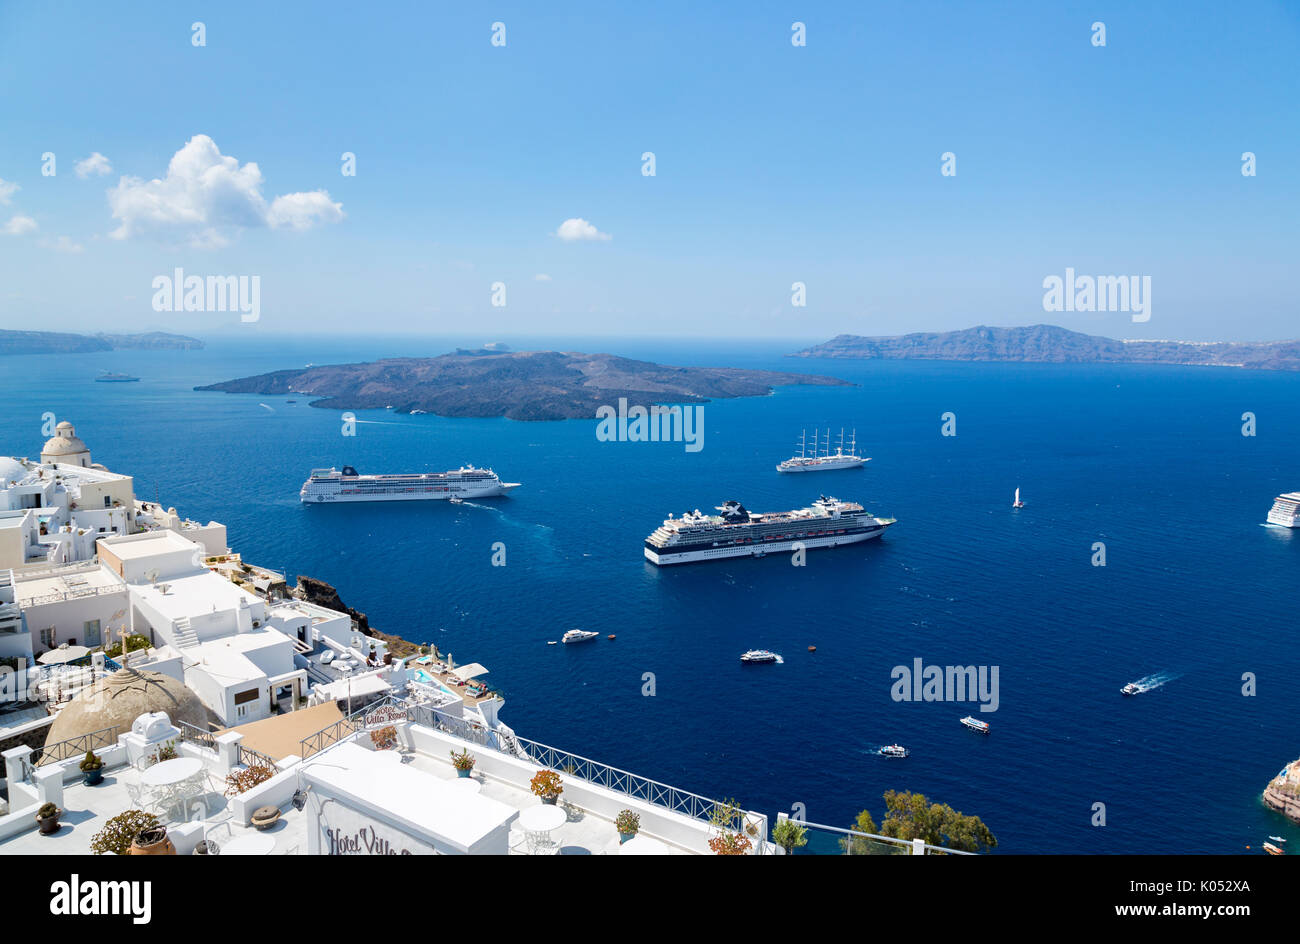 Cruise liners moored in the caldera at Fira (Thira, Thera) capital of Santorini, a Greek island in the Cyclades - Stock Image